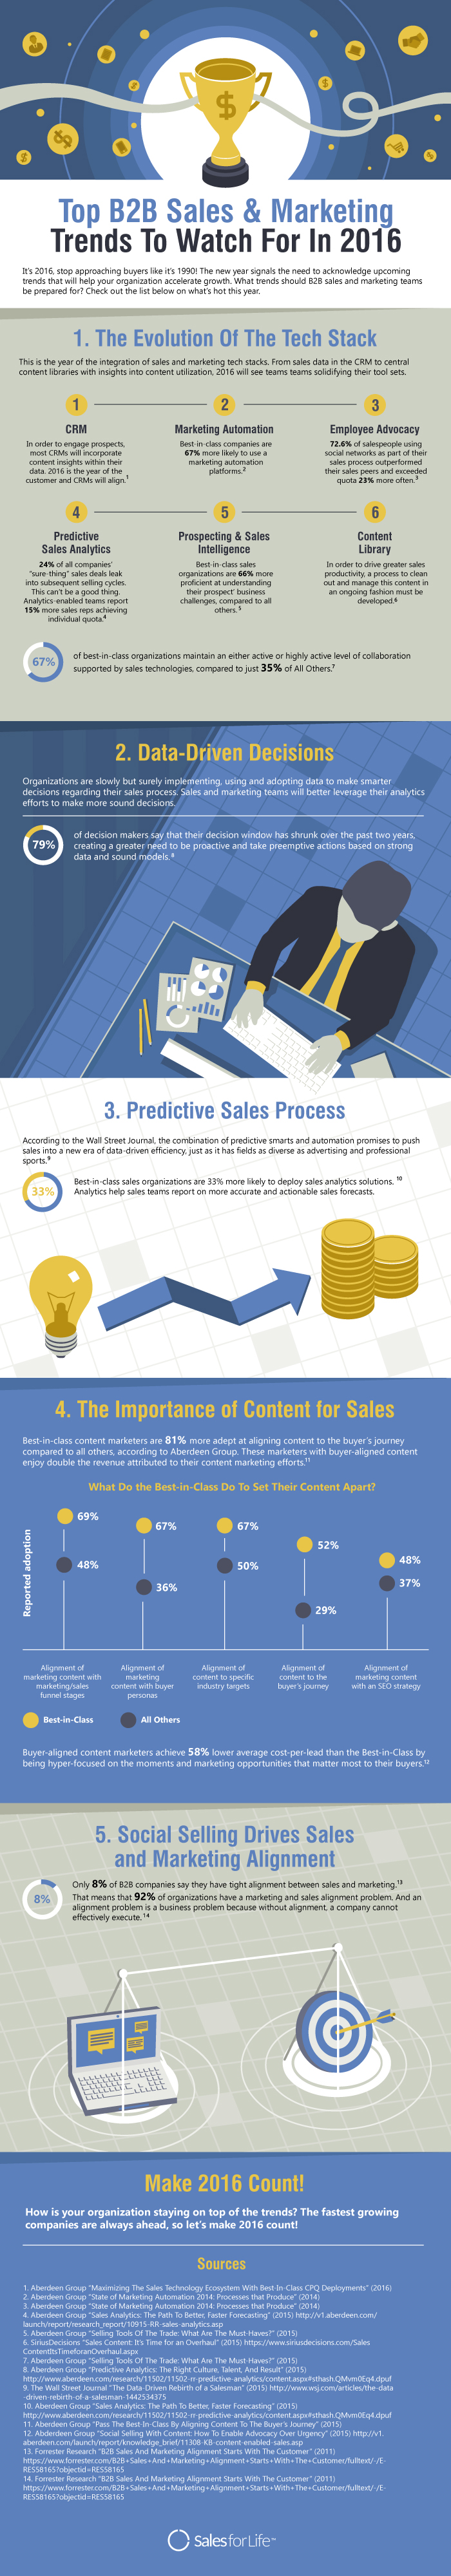 sales-marketing-trends-2016-infographic